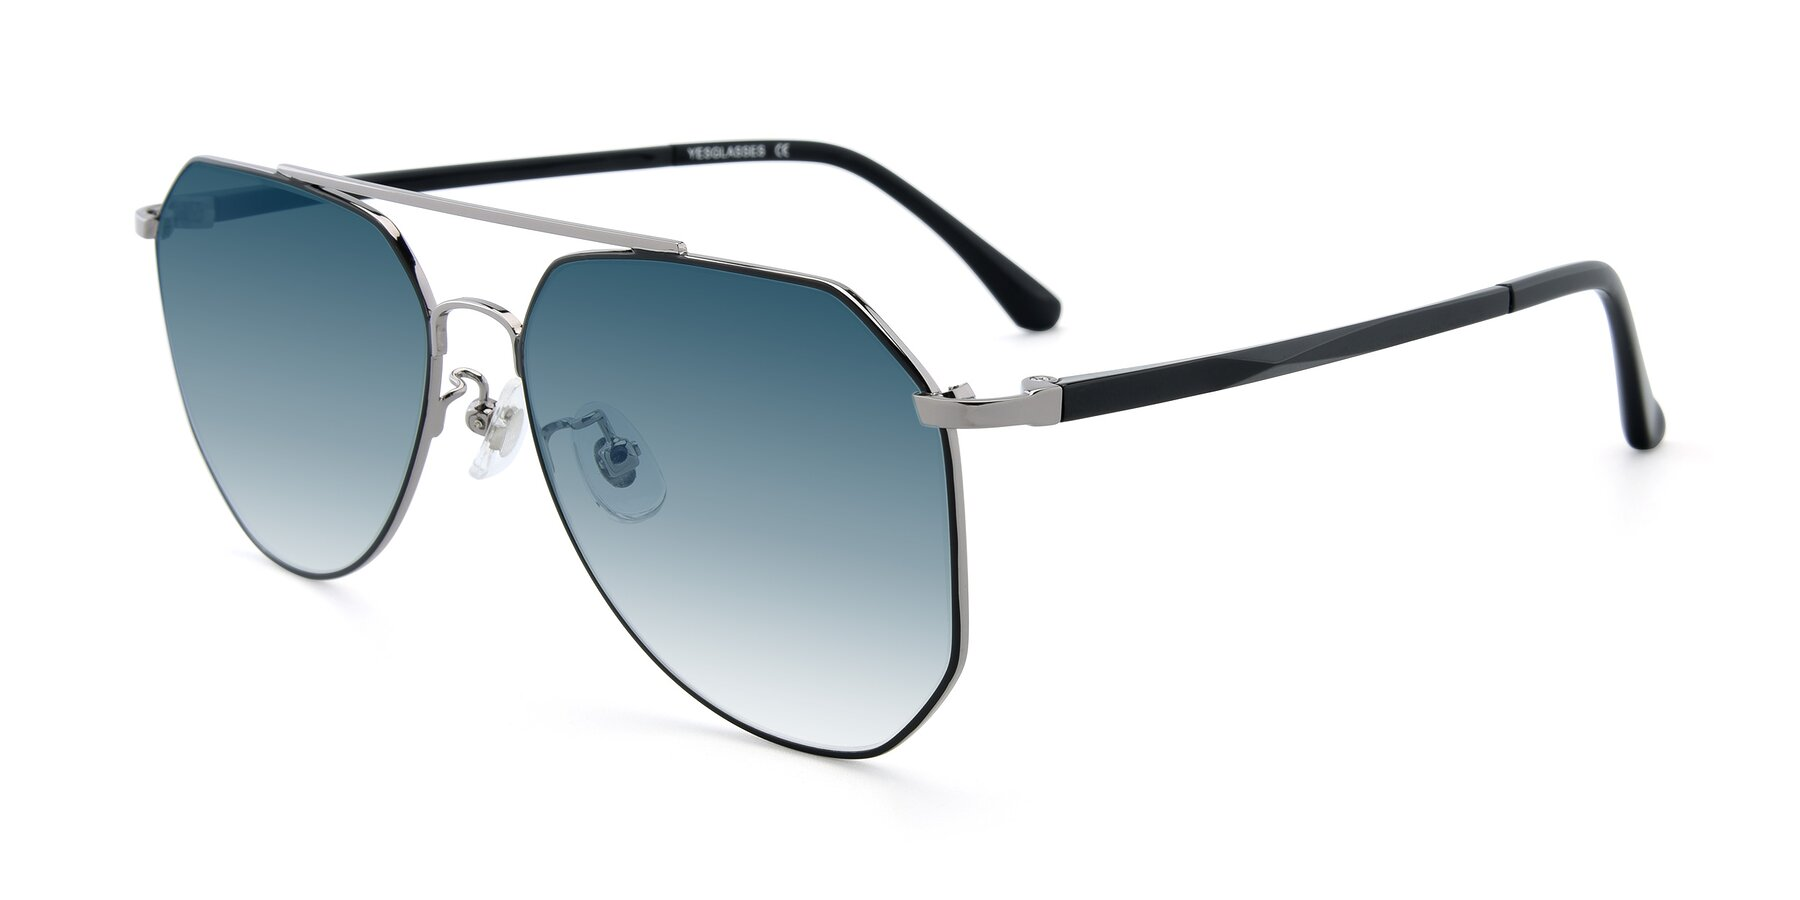 Angle of XC-8040 in Black/ Gun with Blue Gradient Lenses